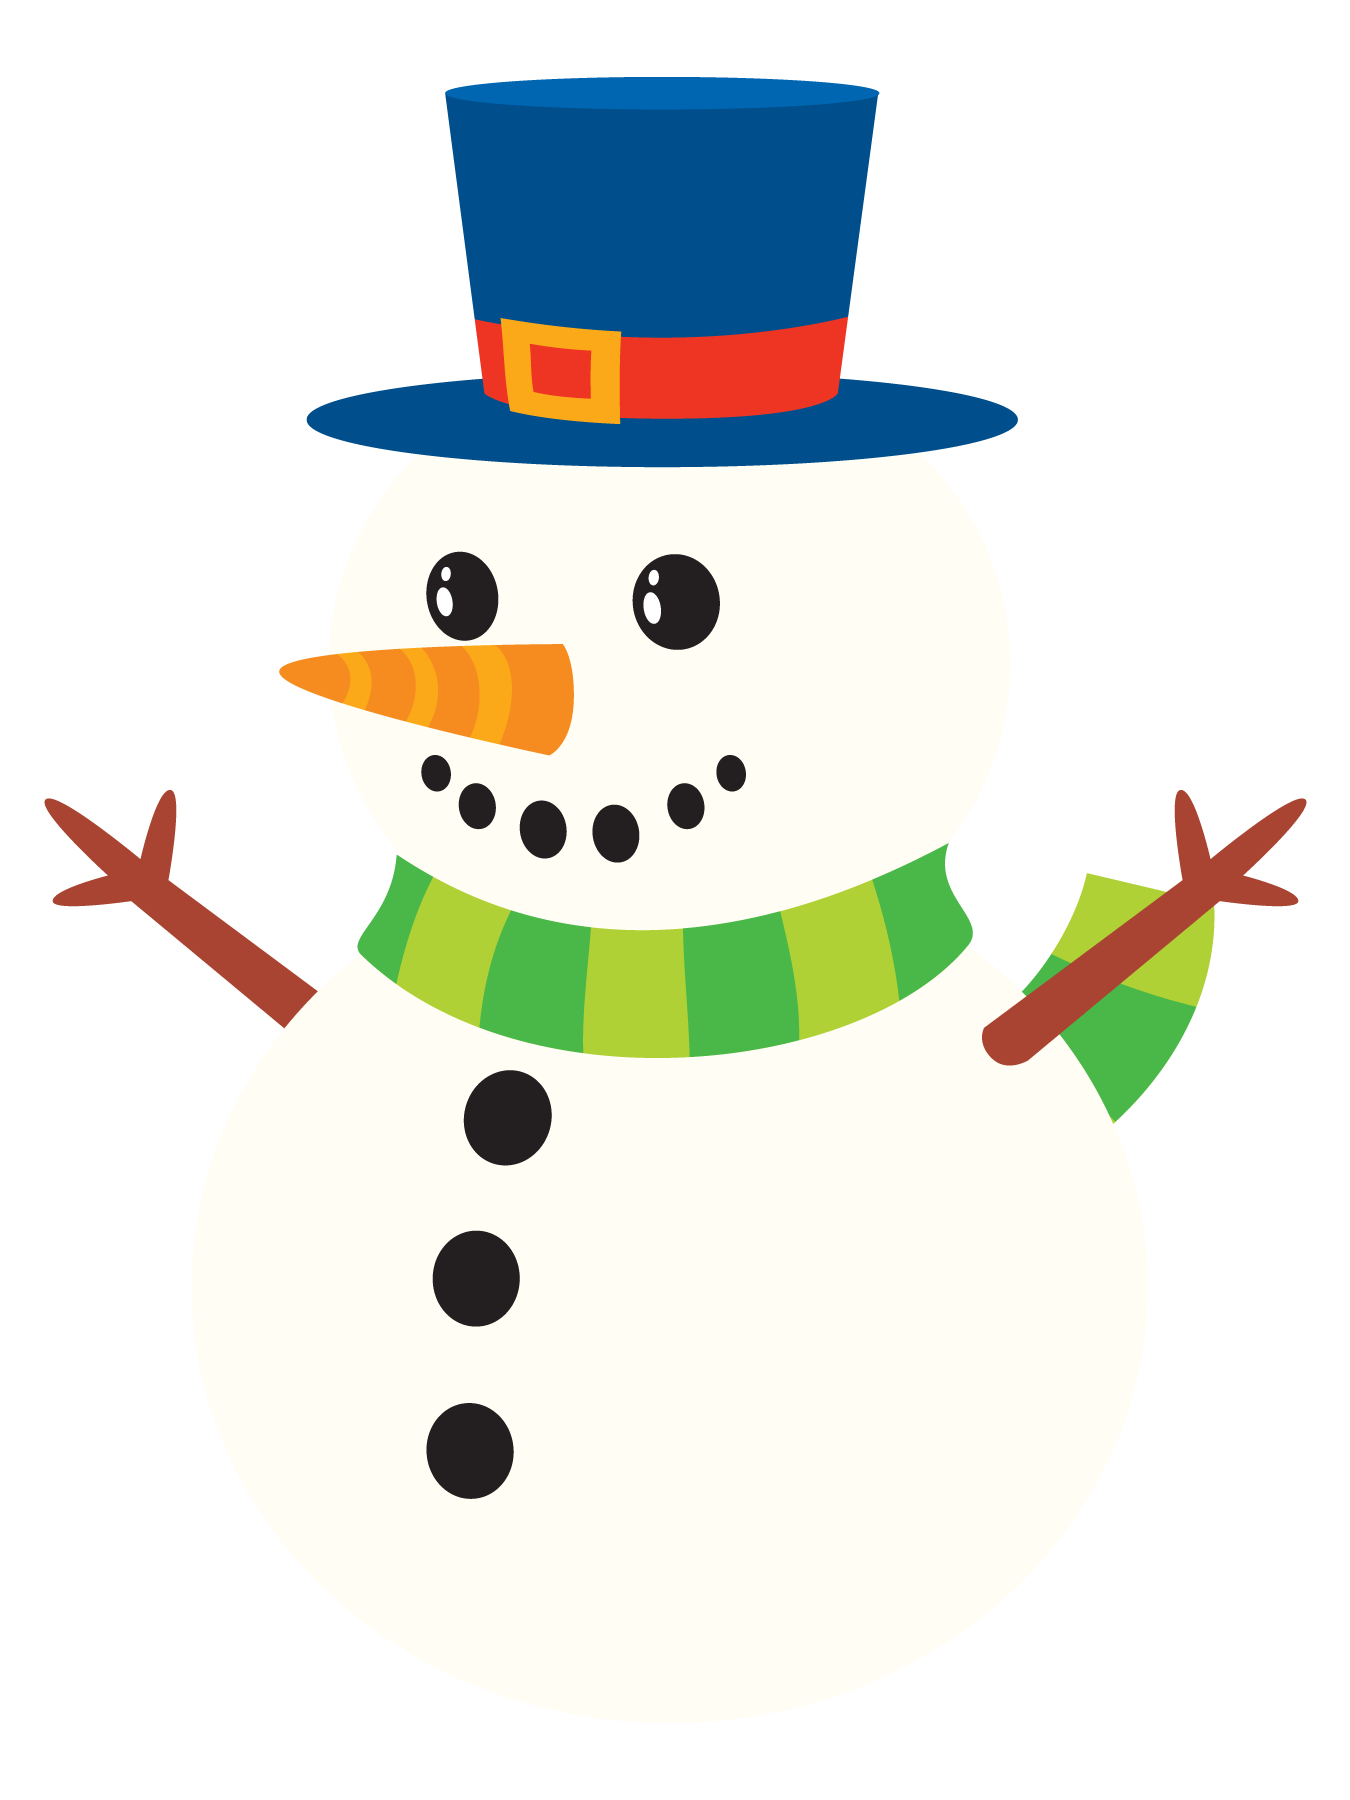 Snowman clipart cute Snowman art Download PDClipart to